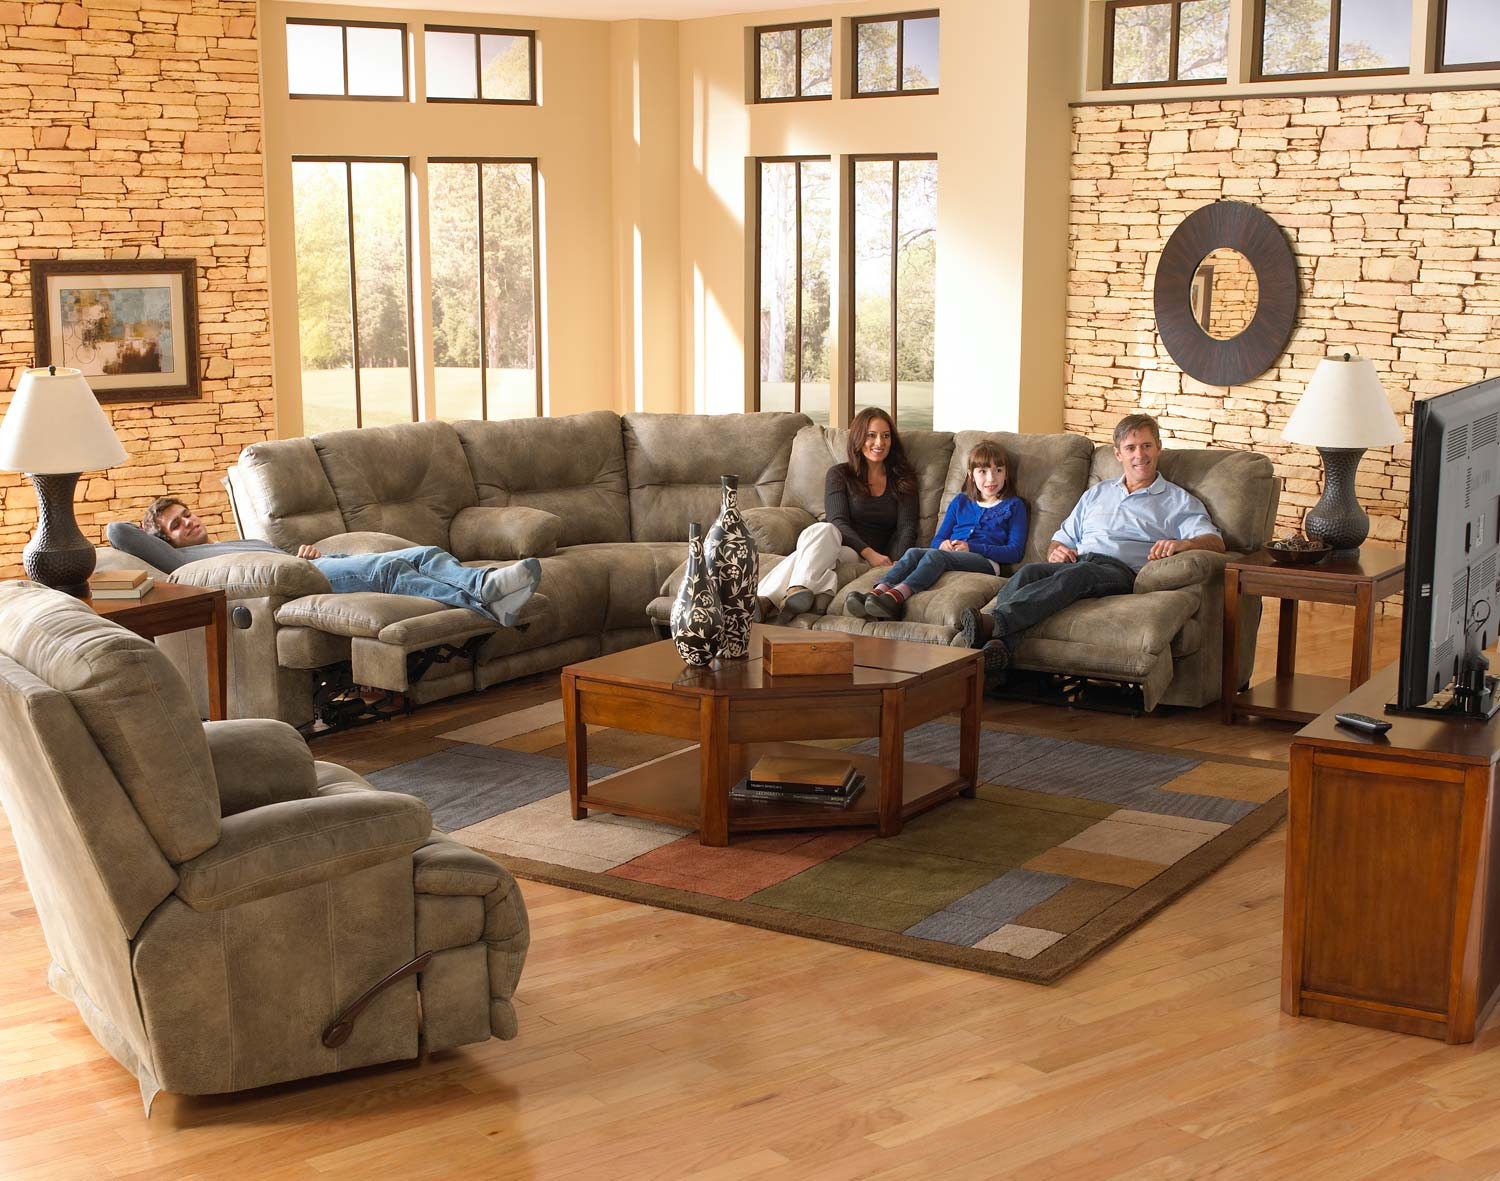 CatNapper Voyager Lay Flat Sectional Sofa Set - Brandy